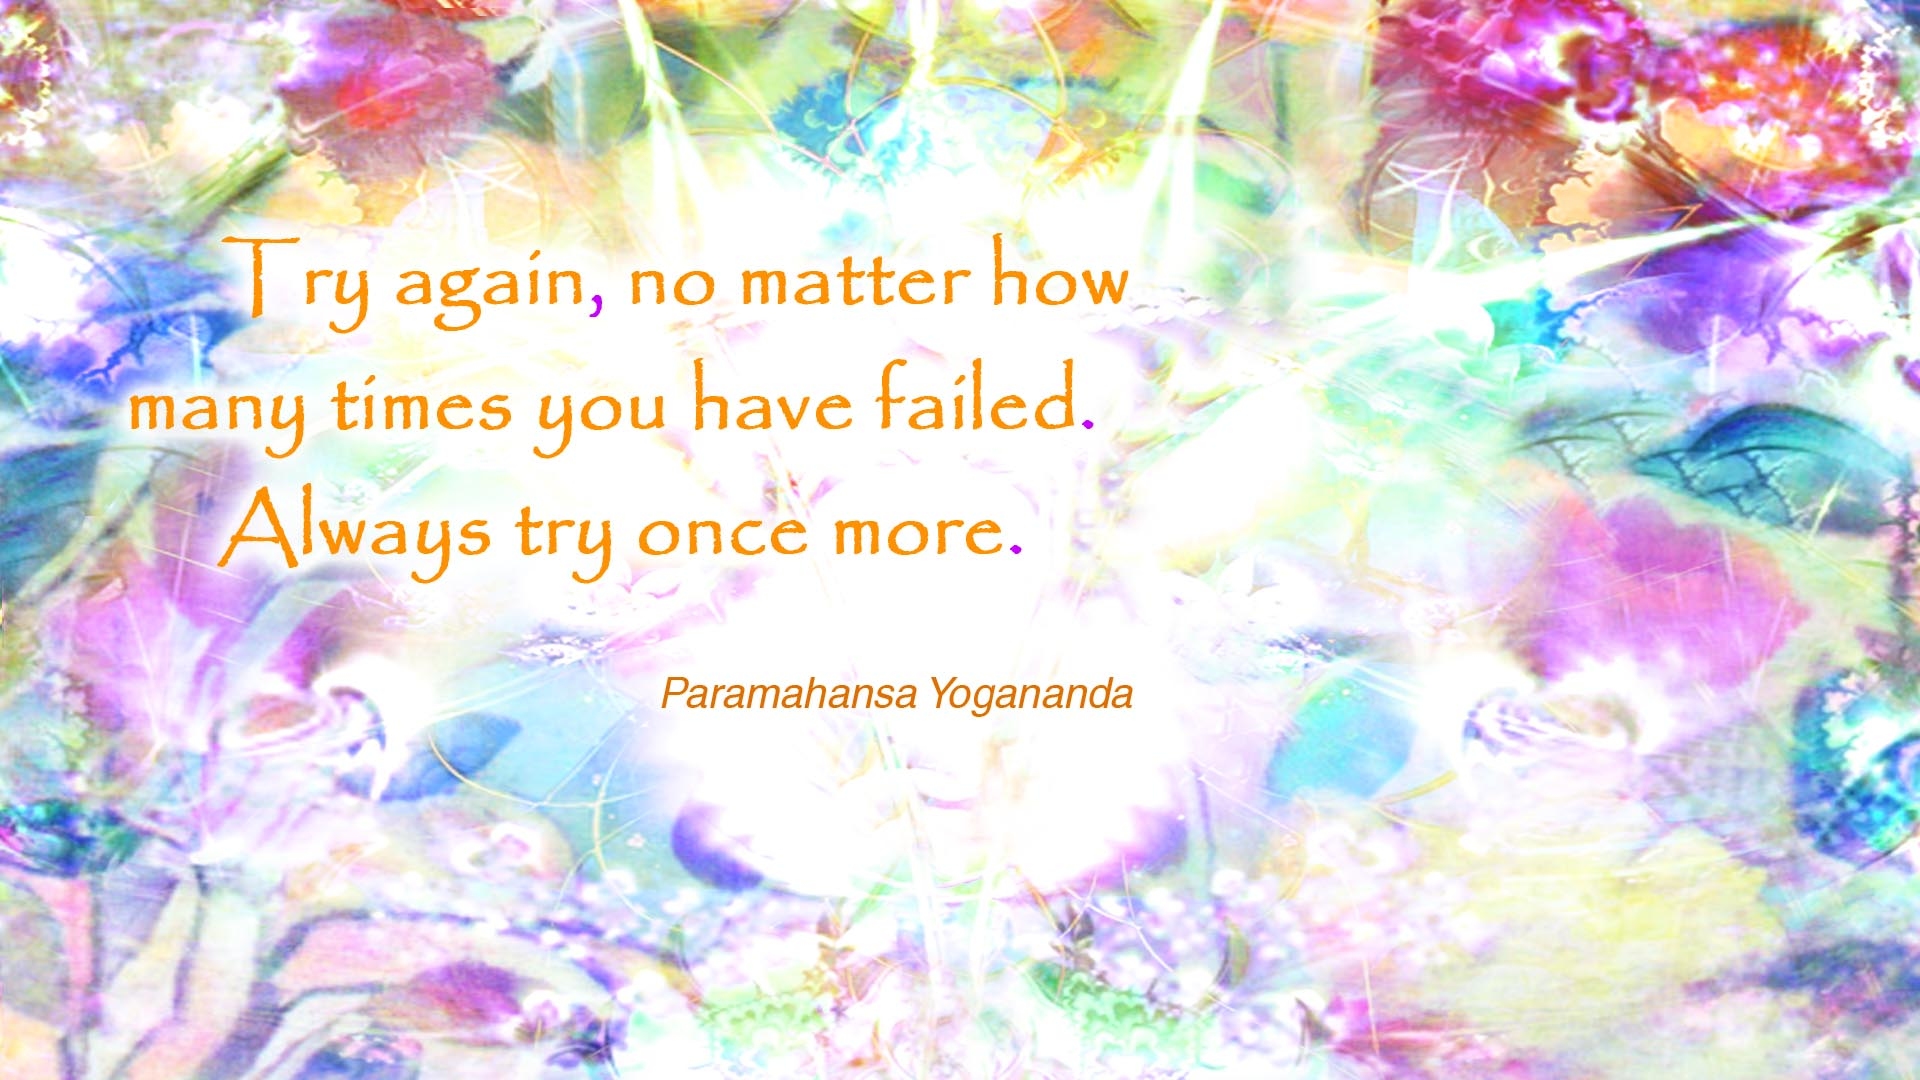 Yogananda always try wallpaper